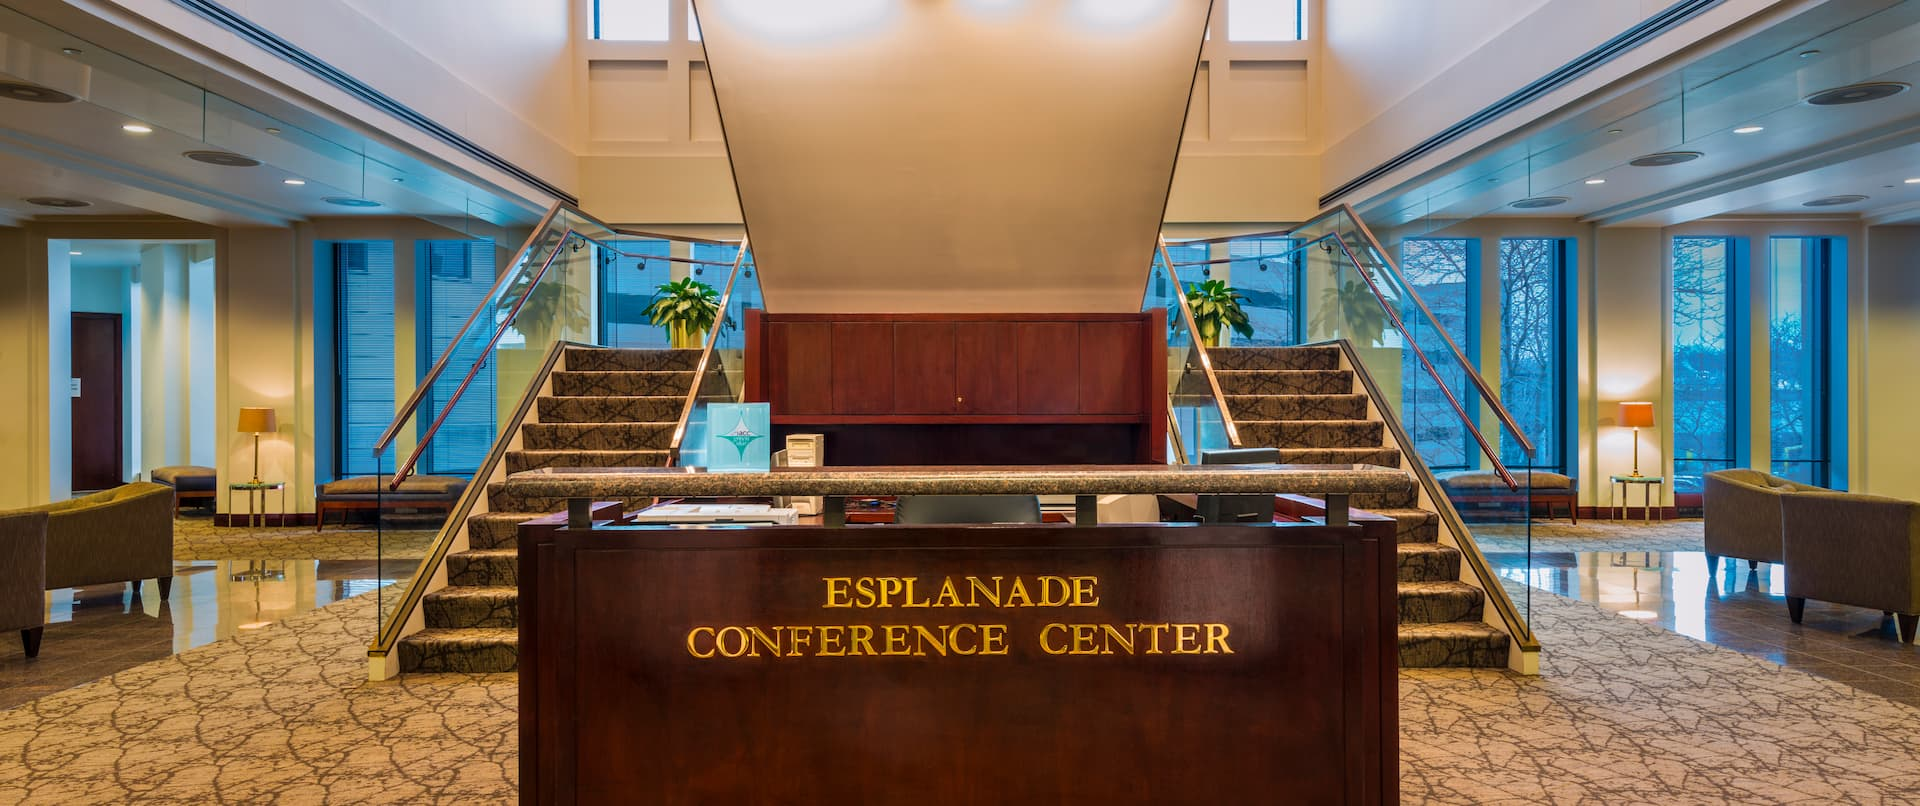 Esplanade Conference Center Signage on Reception Desk With View of Double Staircases, Soft Seating, and Windows in Background